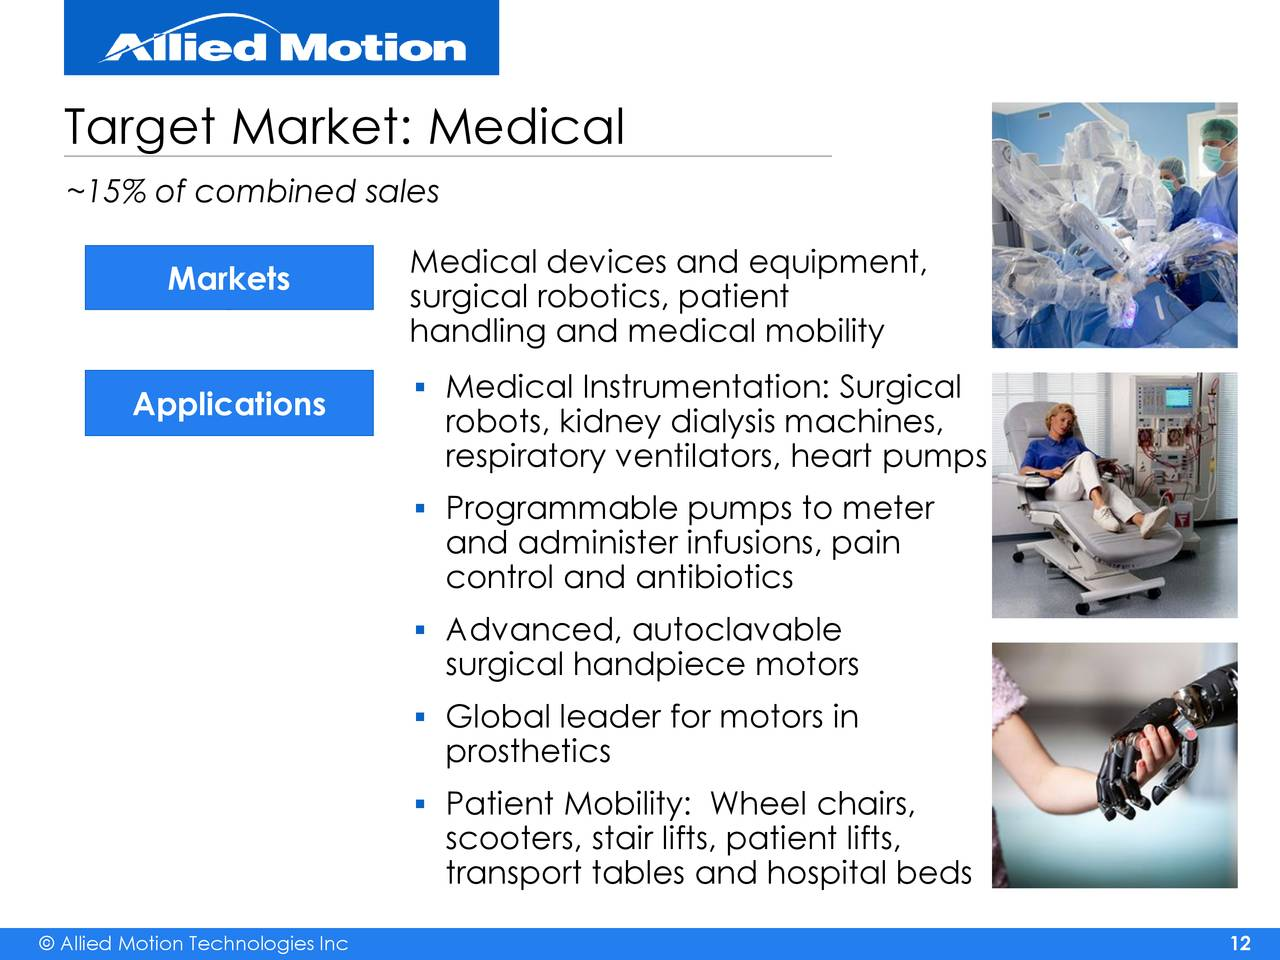 Allied Motion Technologies Amot Presents At 8th Annual